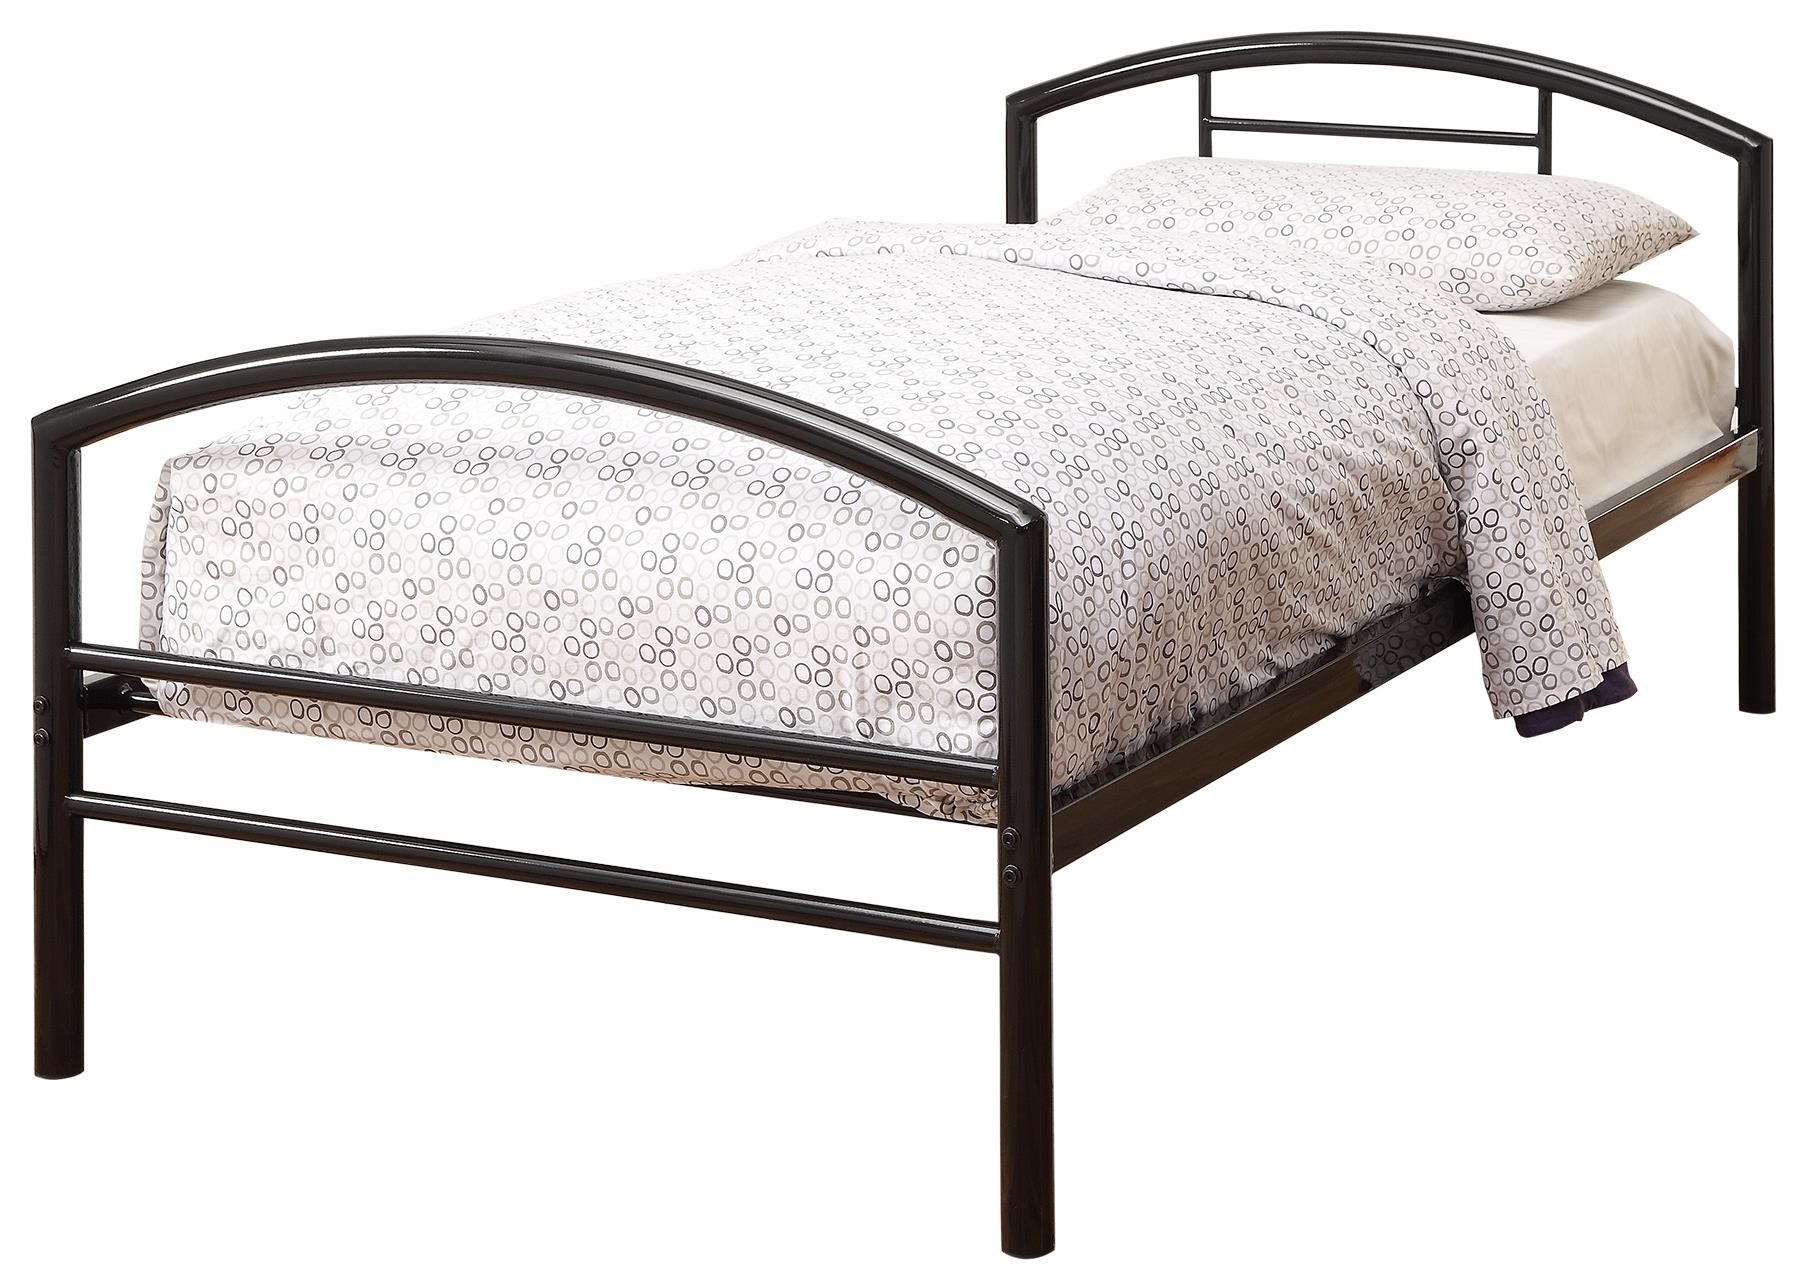 Metal Bed Headboards Iron Beds And Headboards Twin Baines Metal Bed By Coaster At Dunk Bright Furniture